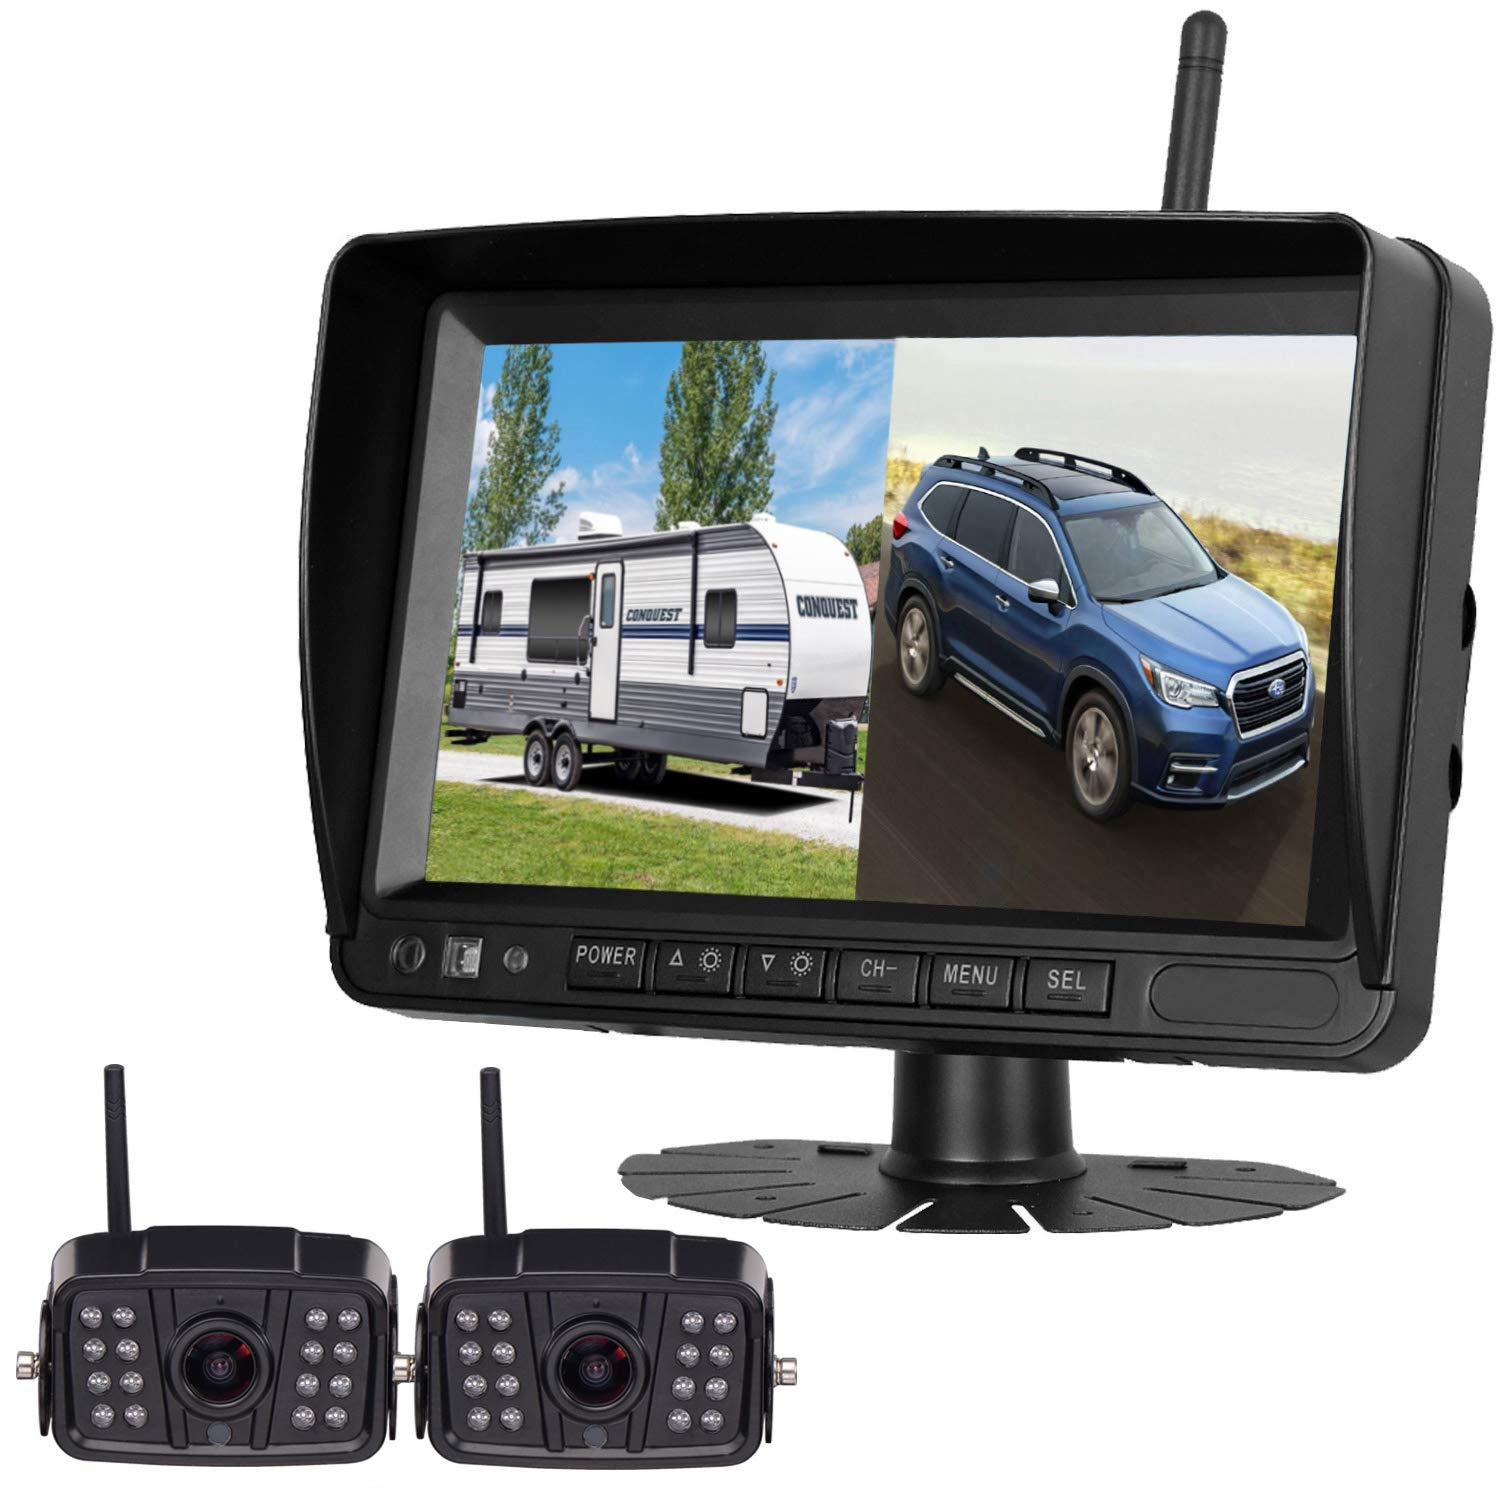 Digital Wireless Dual Backup Camera HD 1080P 2019 Vision 7''DVR Monitor Kit for RVs,Trucks,5th Wheels Support Split/Quard View Screen High-Speed Observation System IP69K Waterproof Driving/Reverse by Dohonesbest